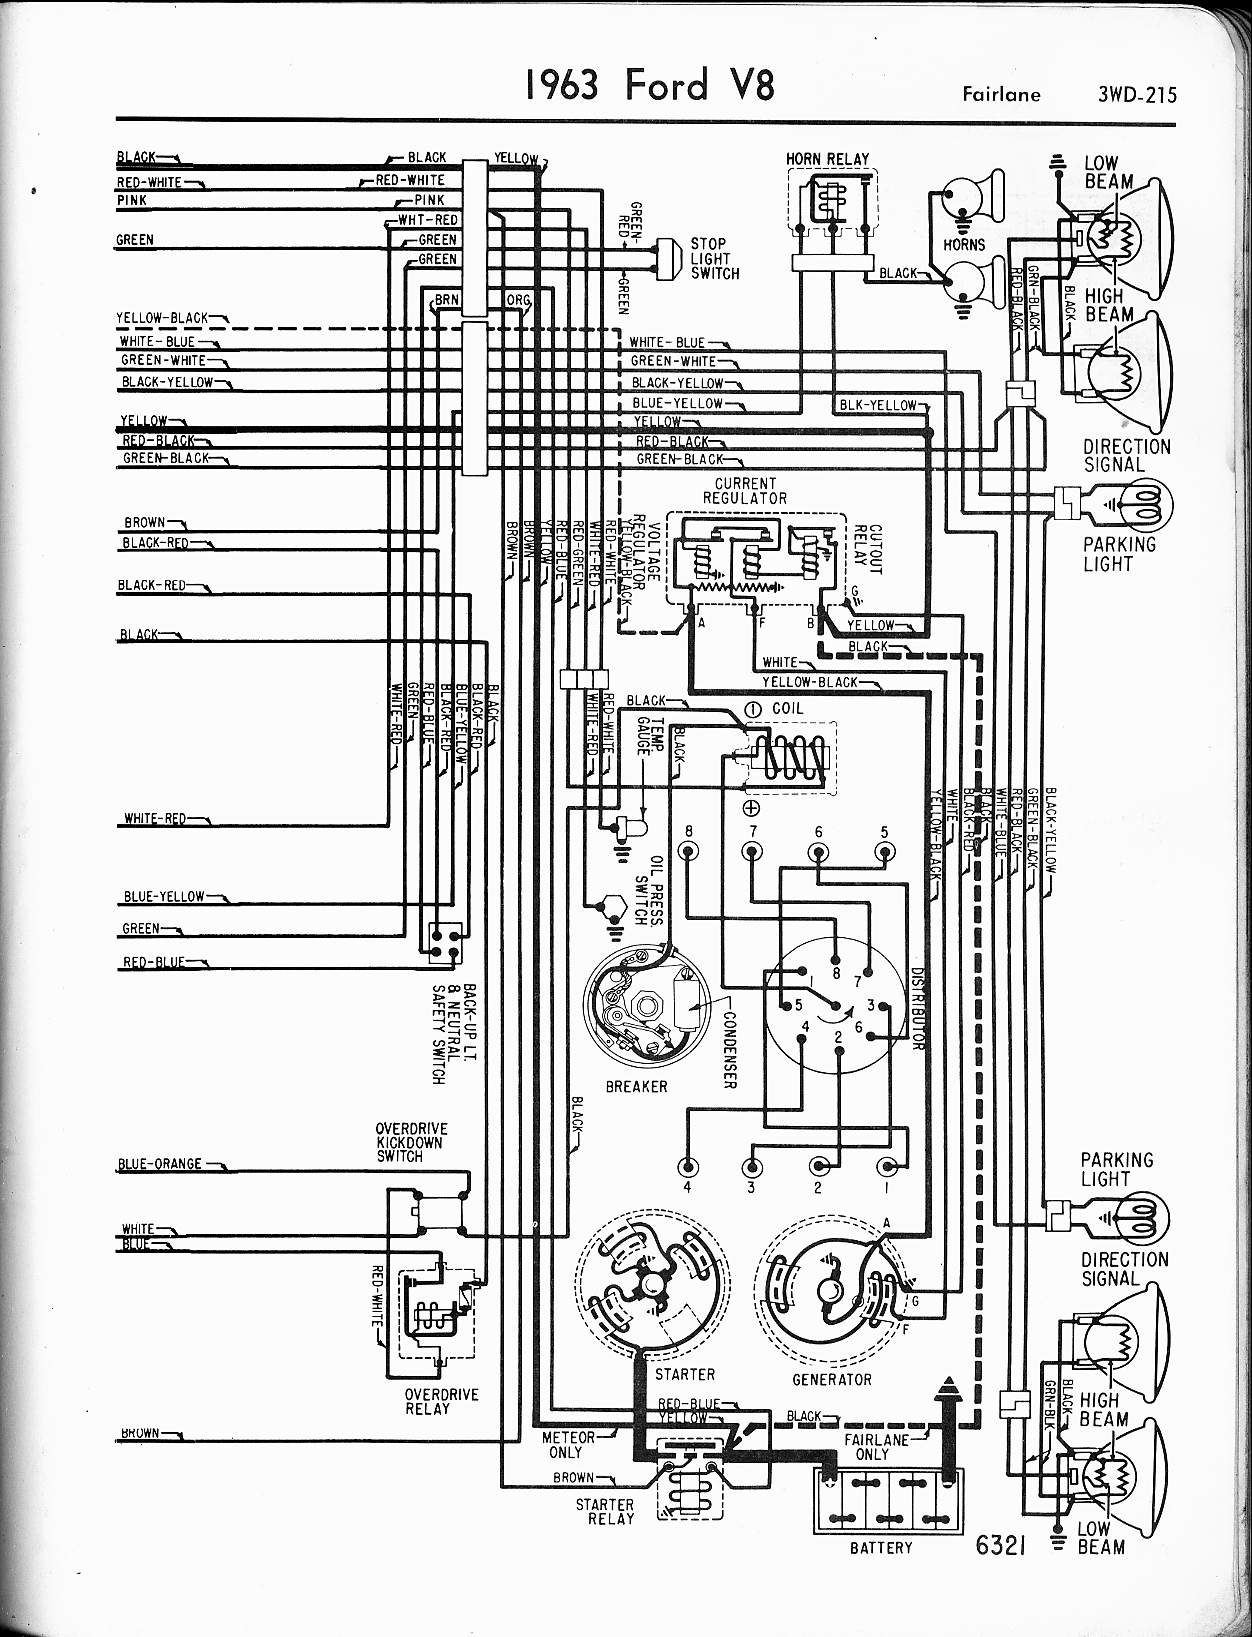 MWire5765 215 57 65 ford wiring diagrams 2002 F250 Wiring Diagram at gsmx.co